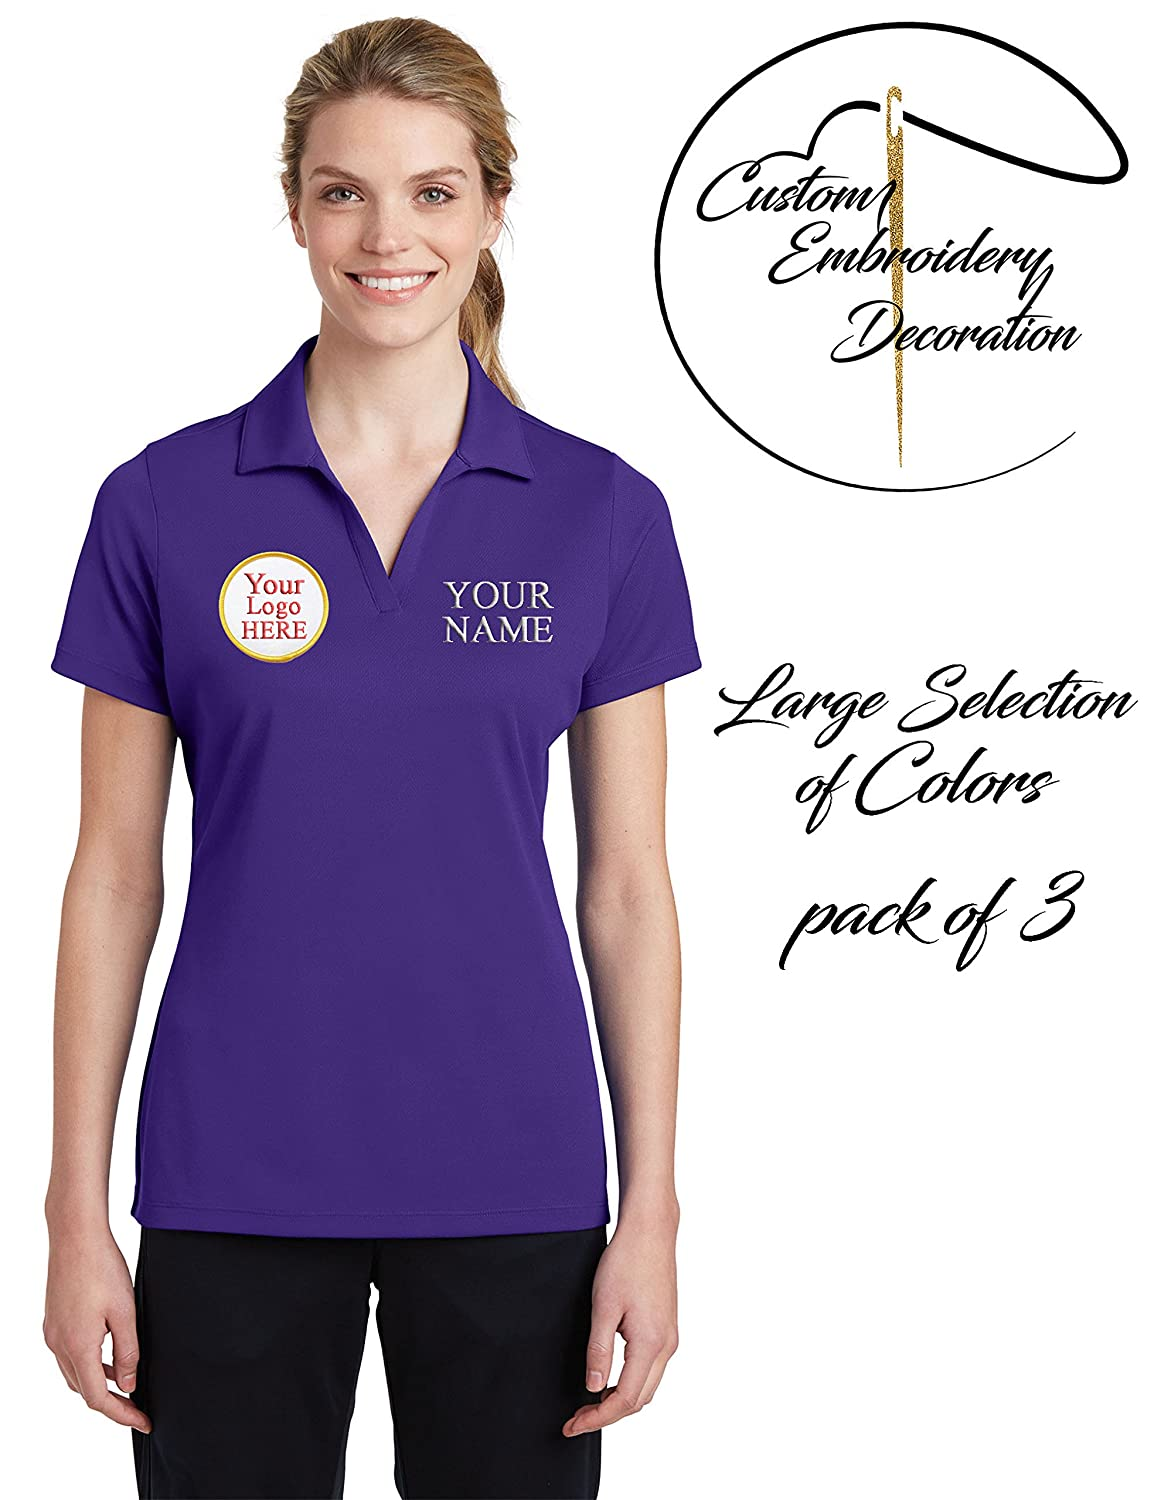 Custom Embroidered Shirts for Ladies Logo /& Name Embroidery Polos 3 Pack